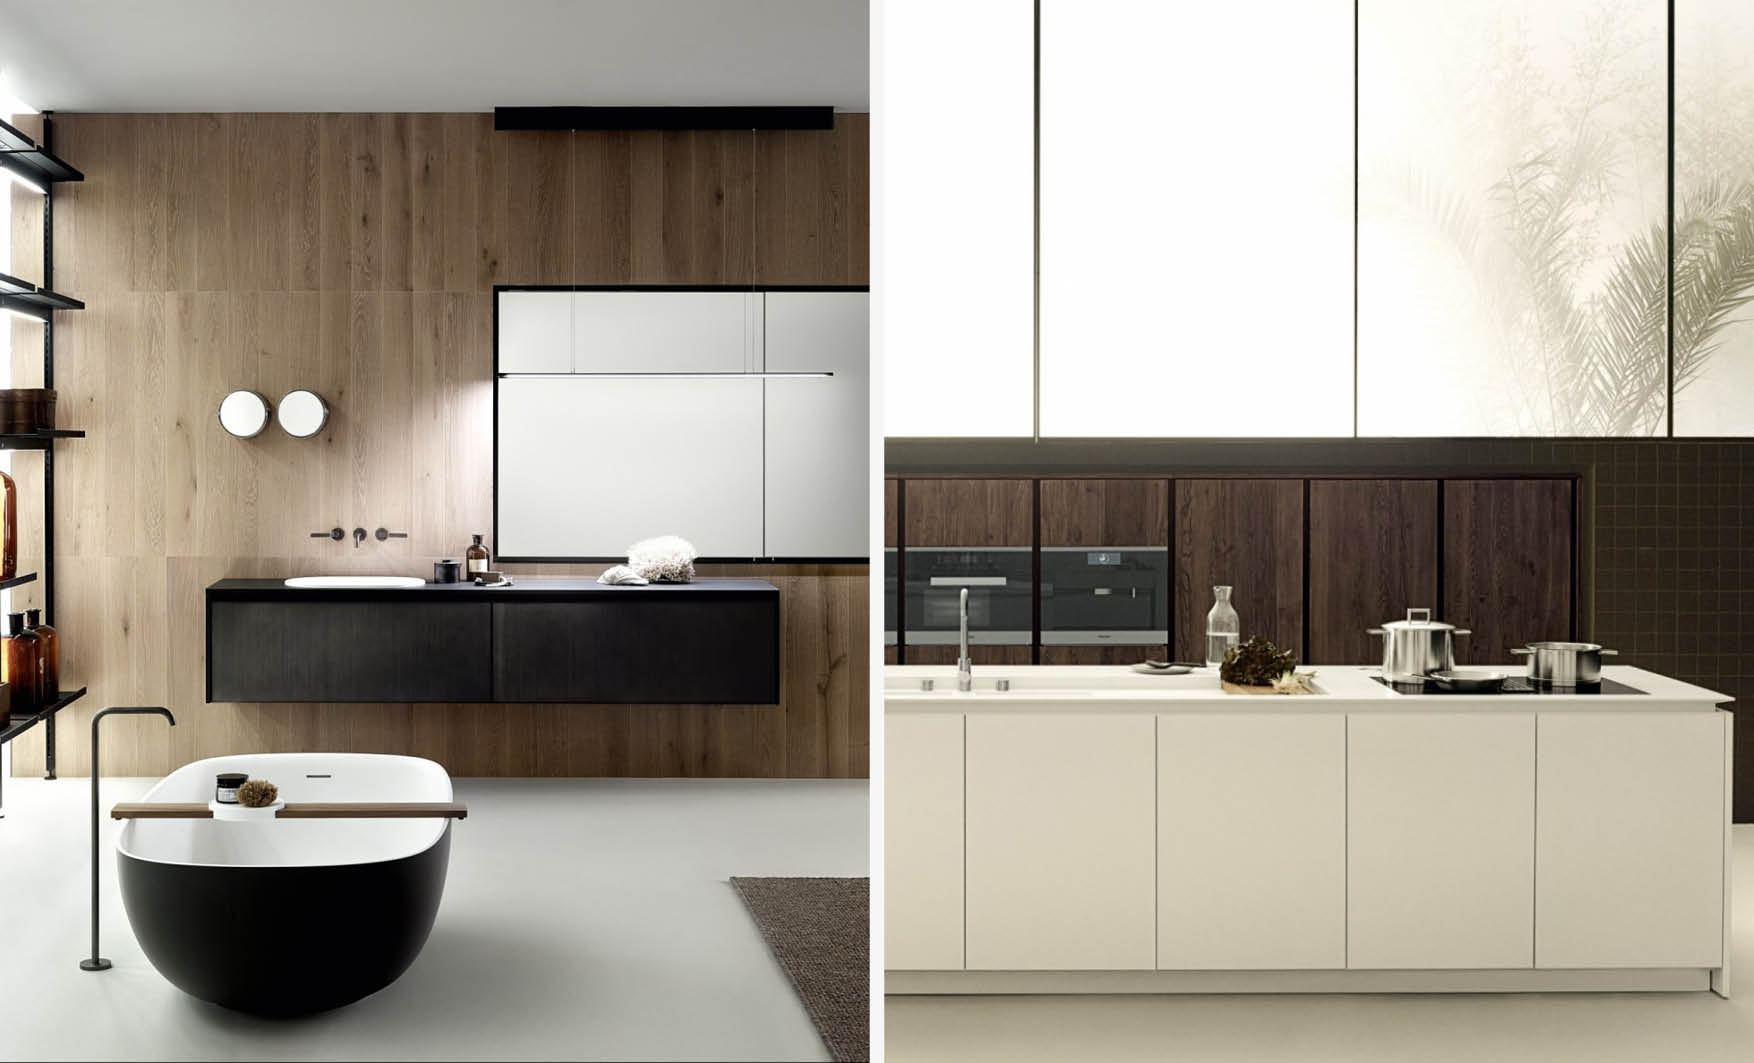 Composition of bathroom and kitchen are two important interior design phases during the project process